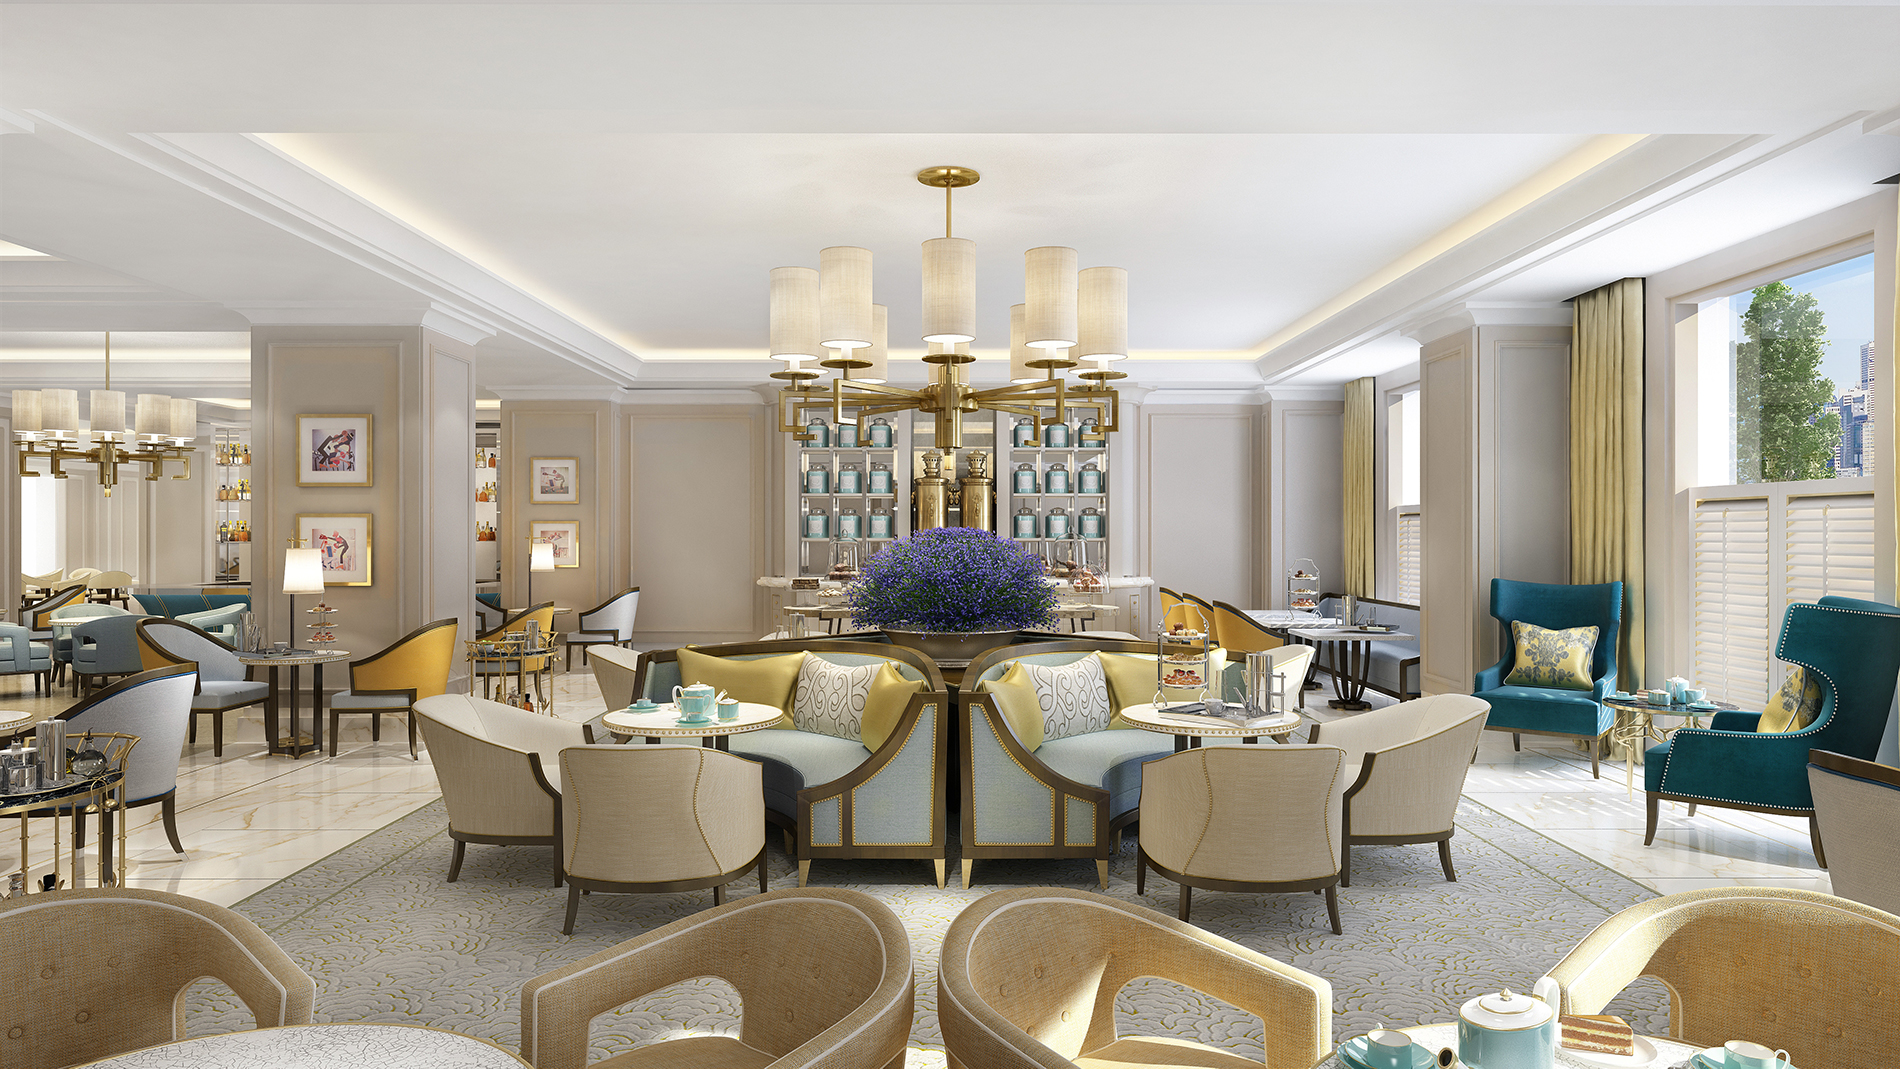 The langham sydney confirmed to re open legendary doors - Signature interiors and design kent ...